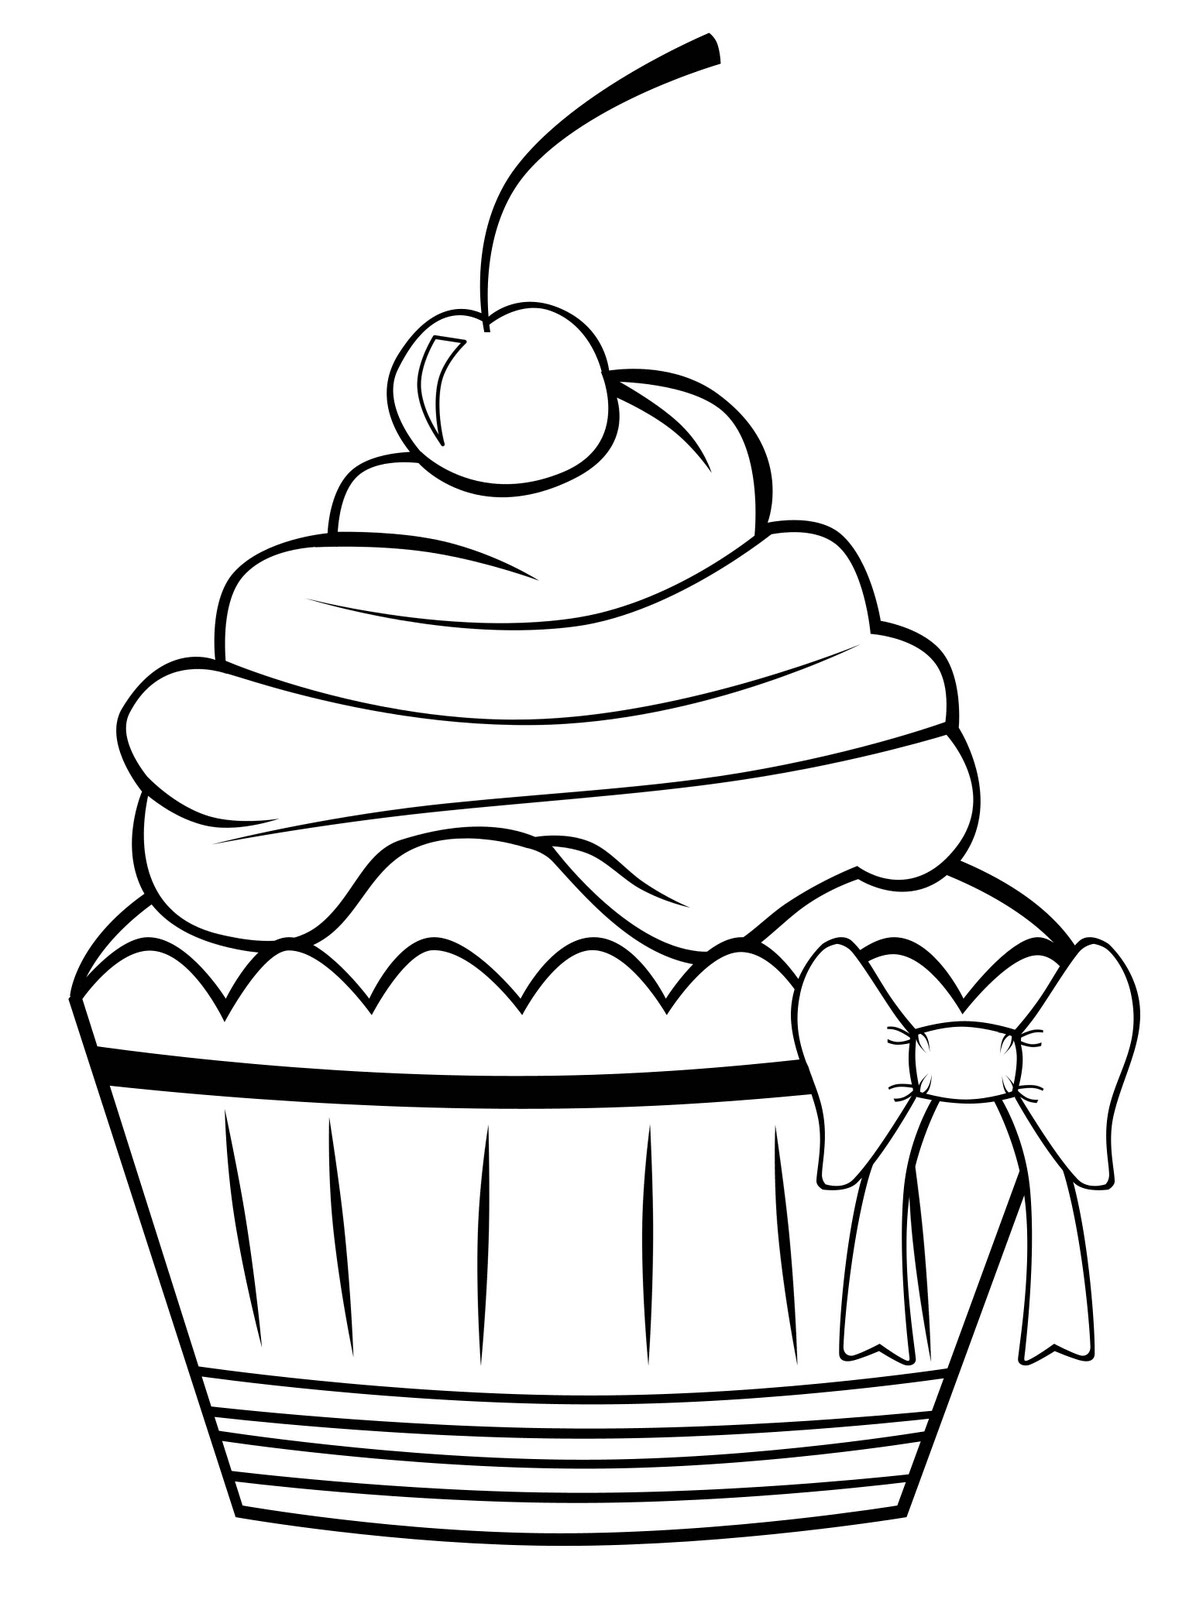 Drawing Cupcake - ClipArt Best